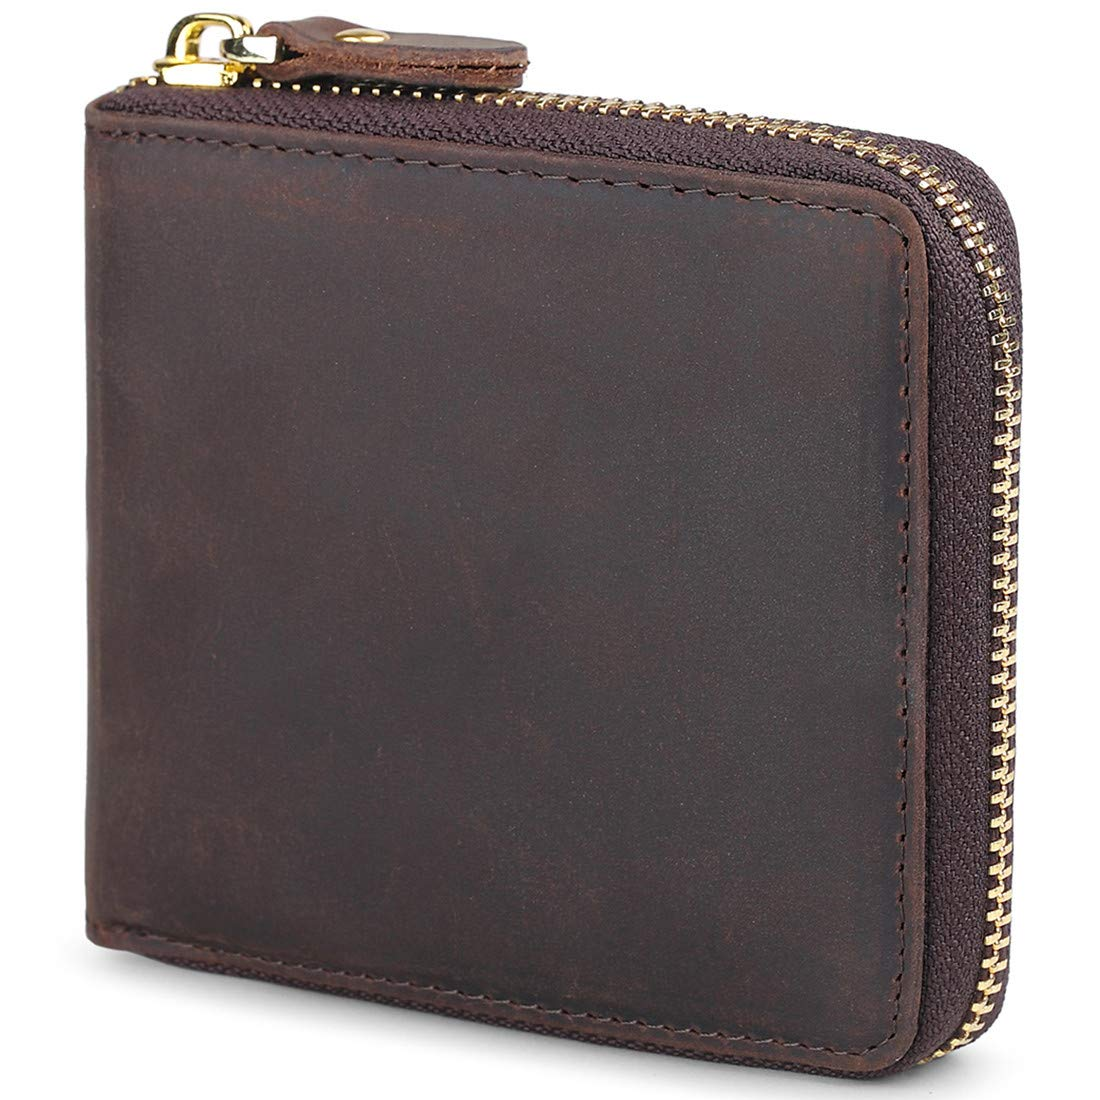 Huztencor Wallets for Men Zipper Leather RFID Blocking Wallet Bifold with Zippers Coin Change Pocket Picture Slots Zip Around Travel Wallet Coffee